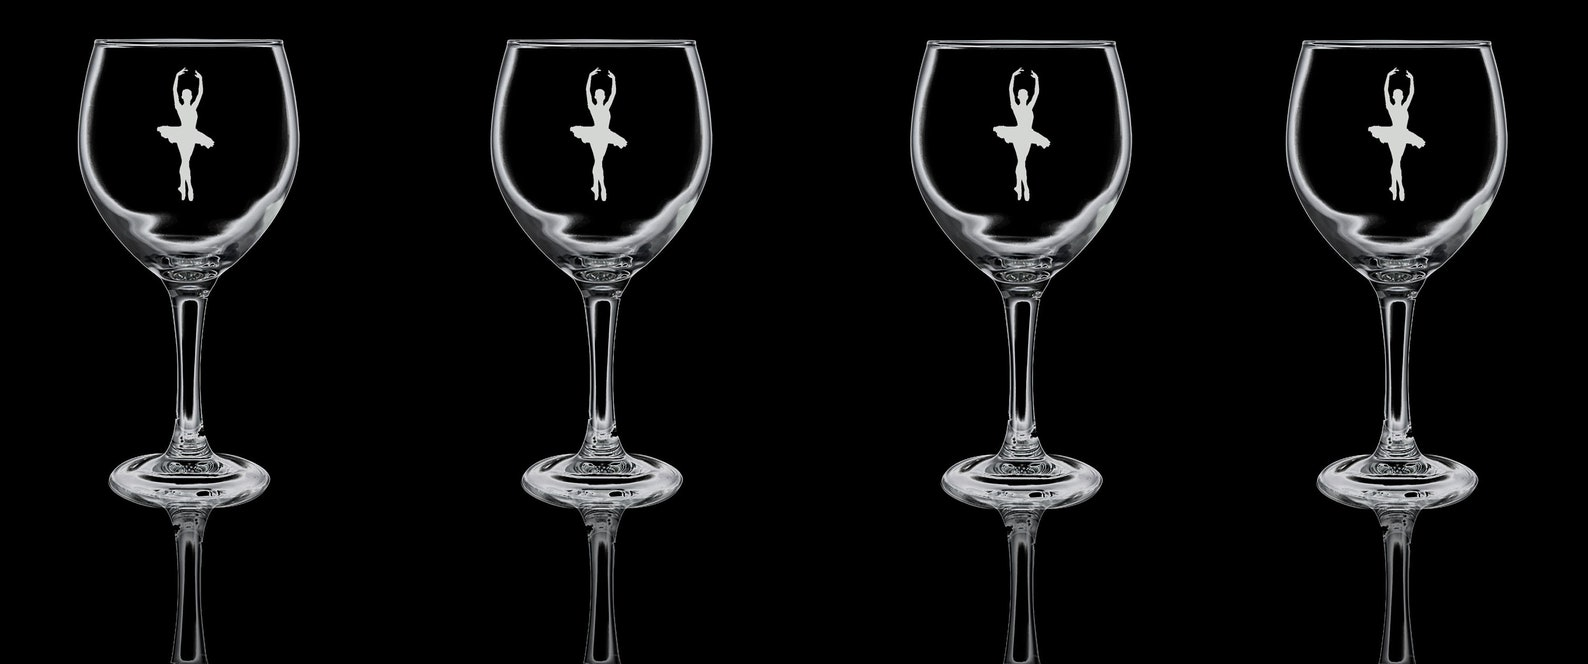 ballet dancer ballerina gin glass balloon gin glass- gift for him, gift for her - hand etched glass.04